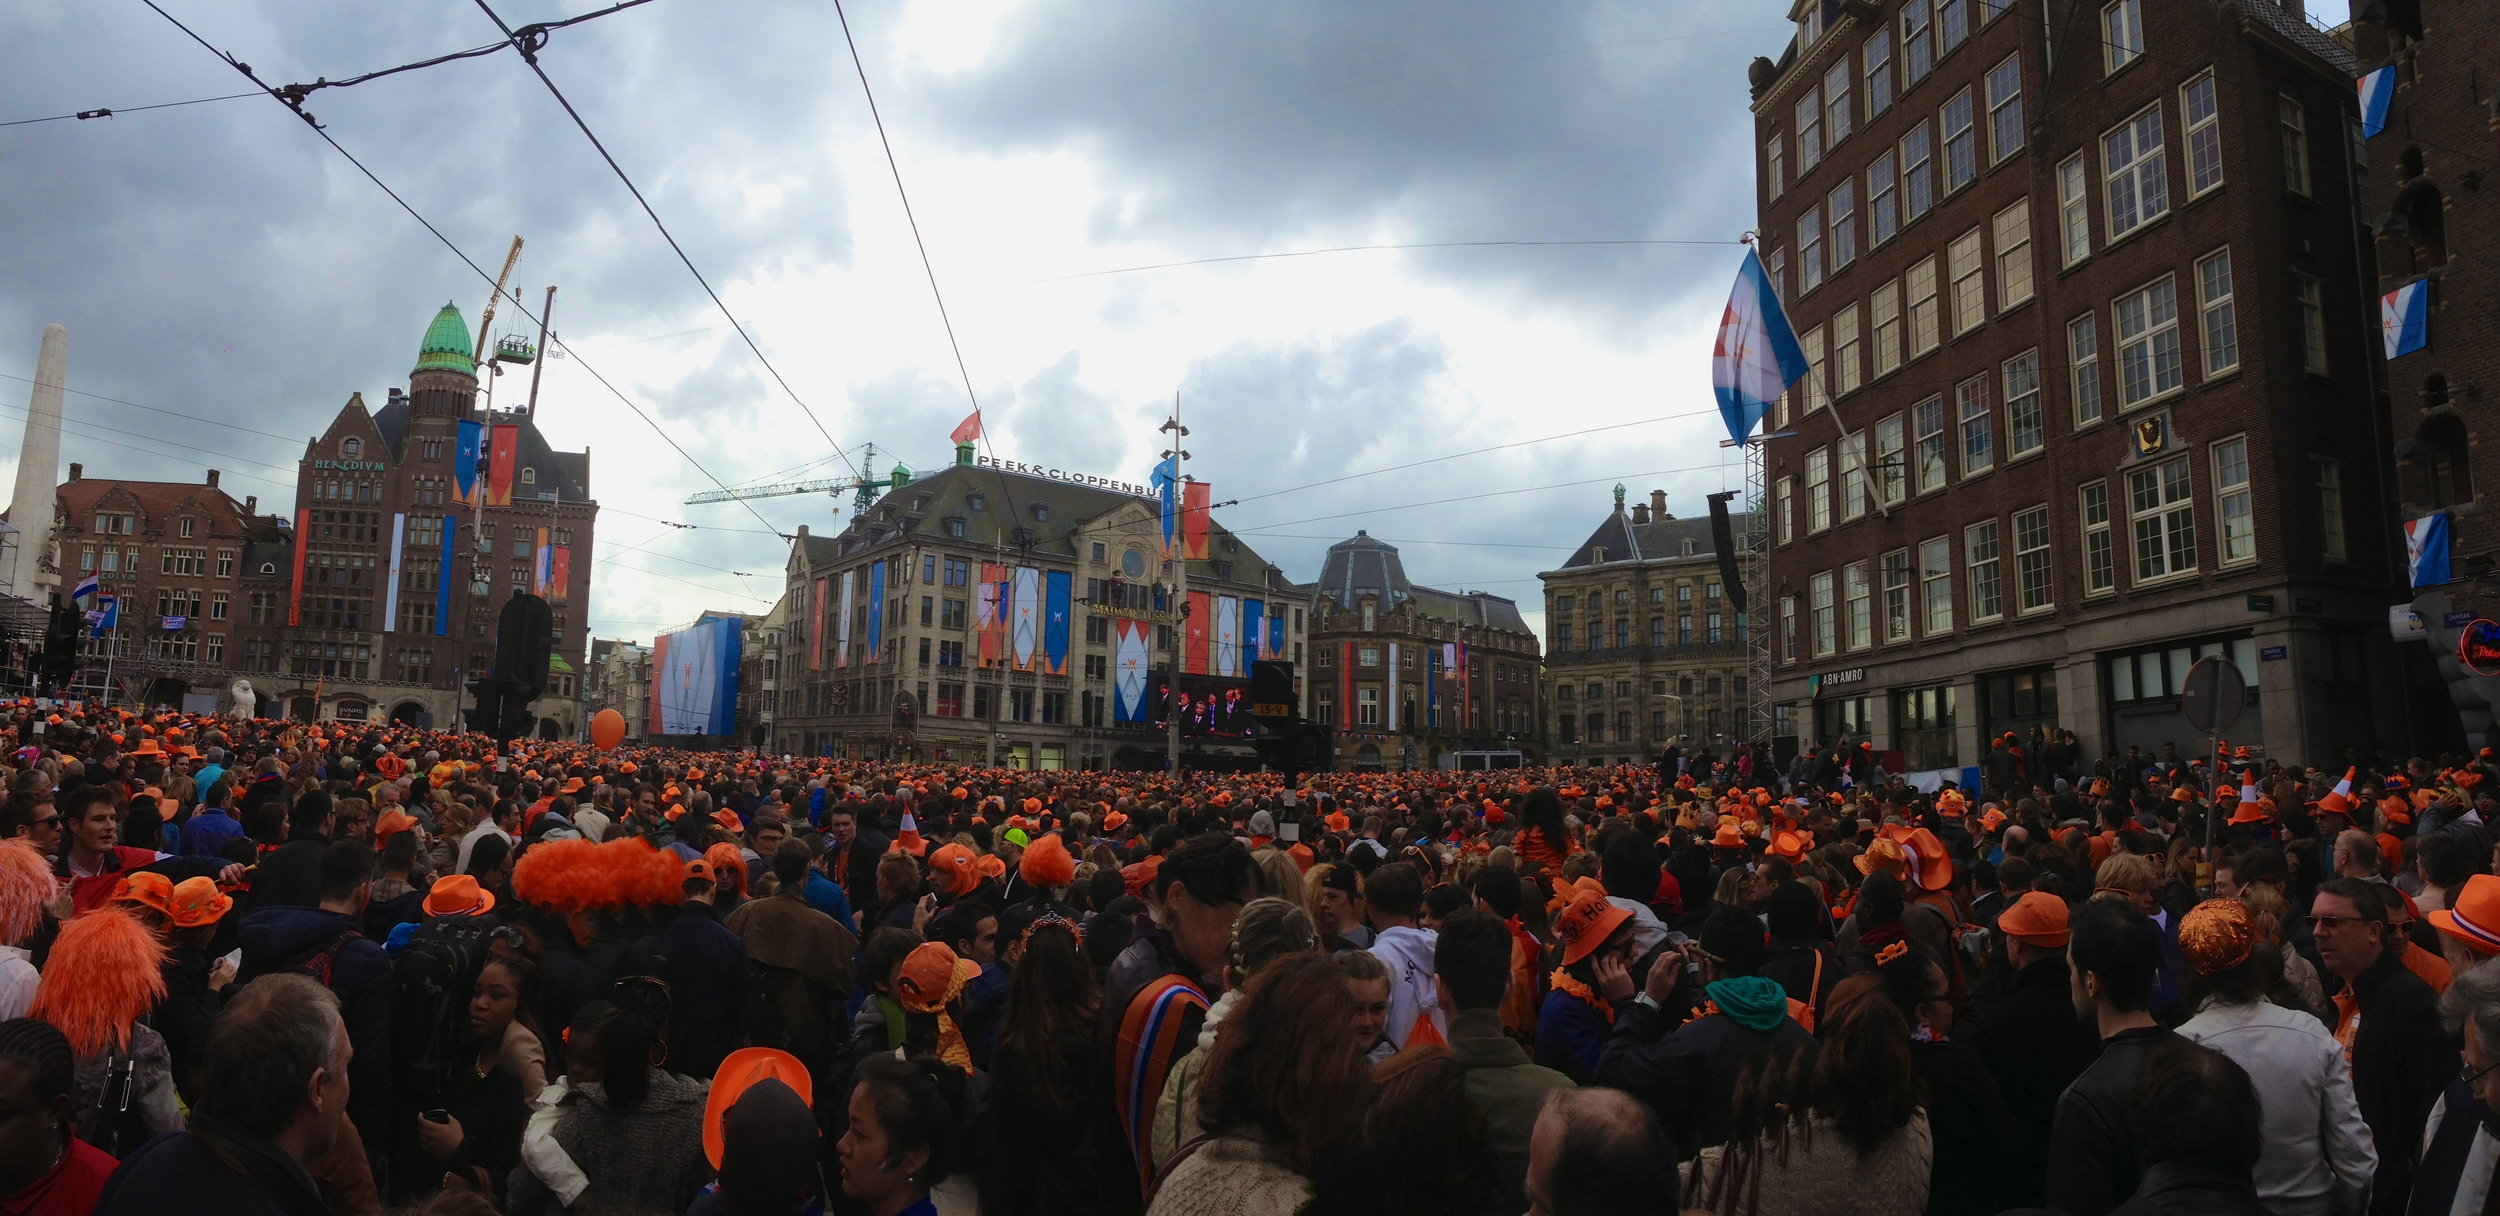 Inauguration of the new King of Holland, King Willem-Alexander